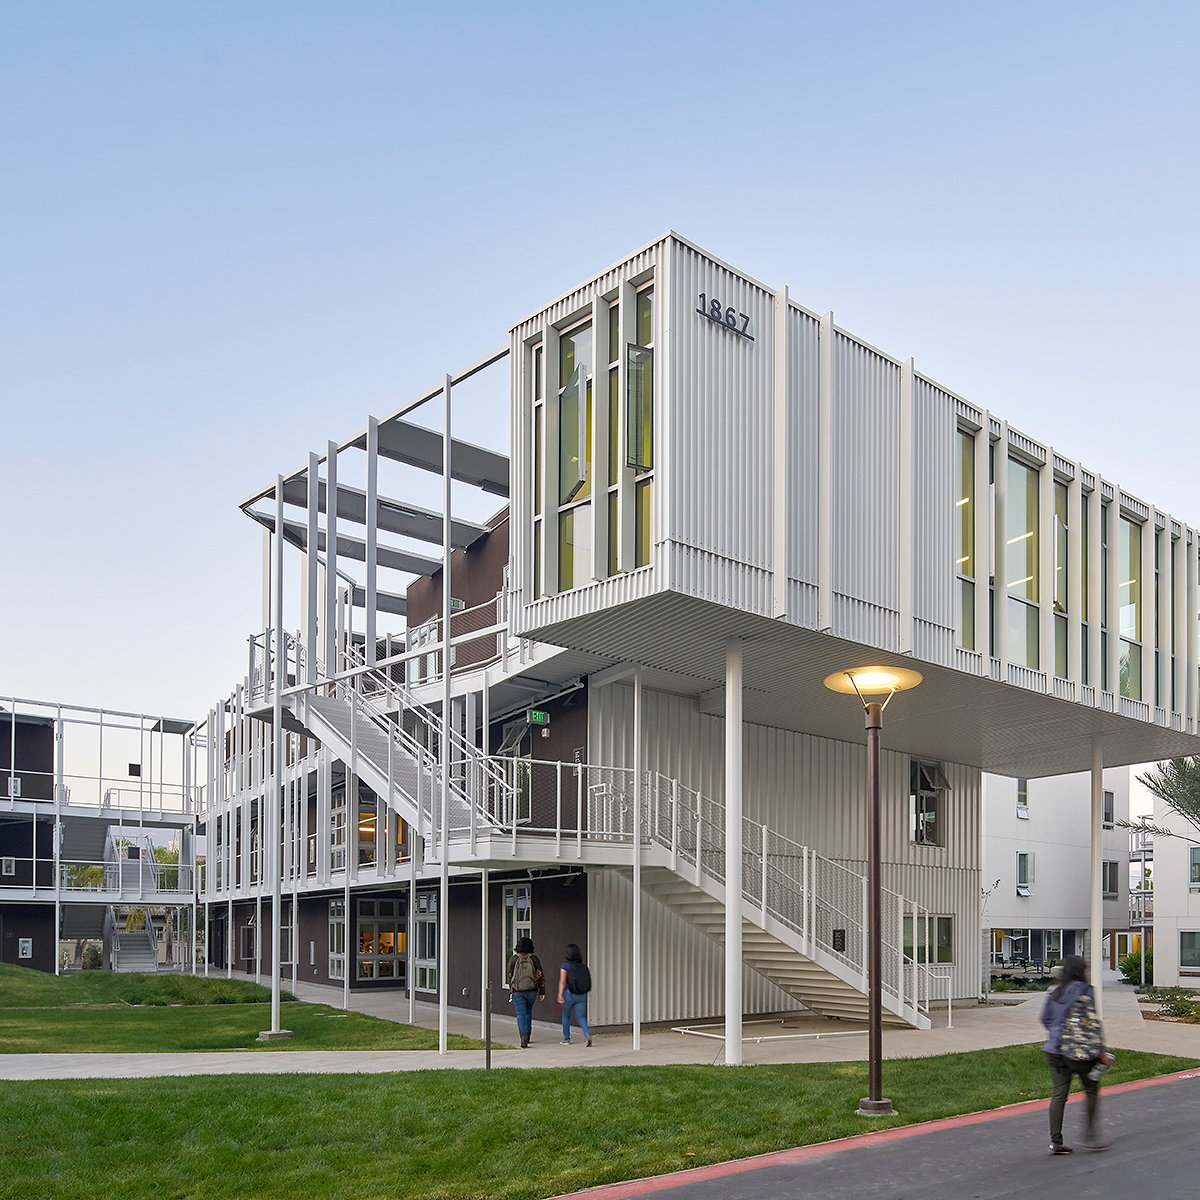 UCSB San Joaquin Student Housing by Lorcan O'Herlihy Architects